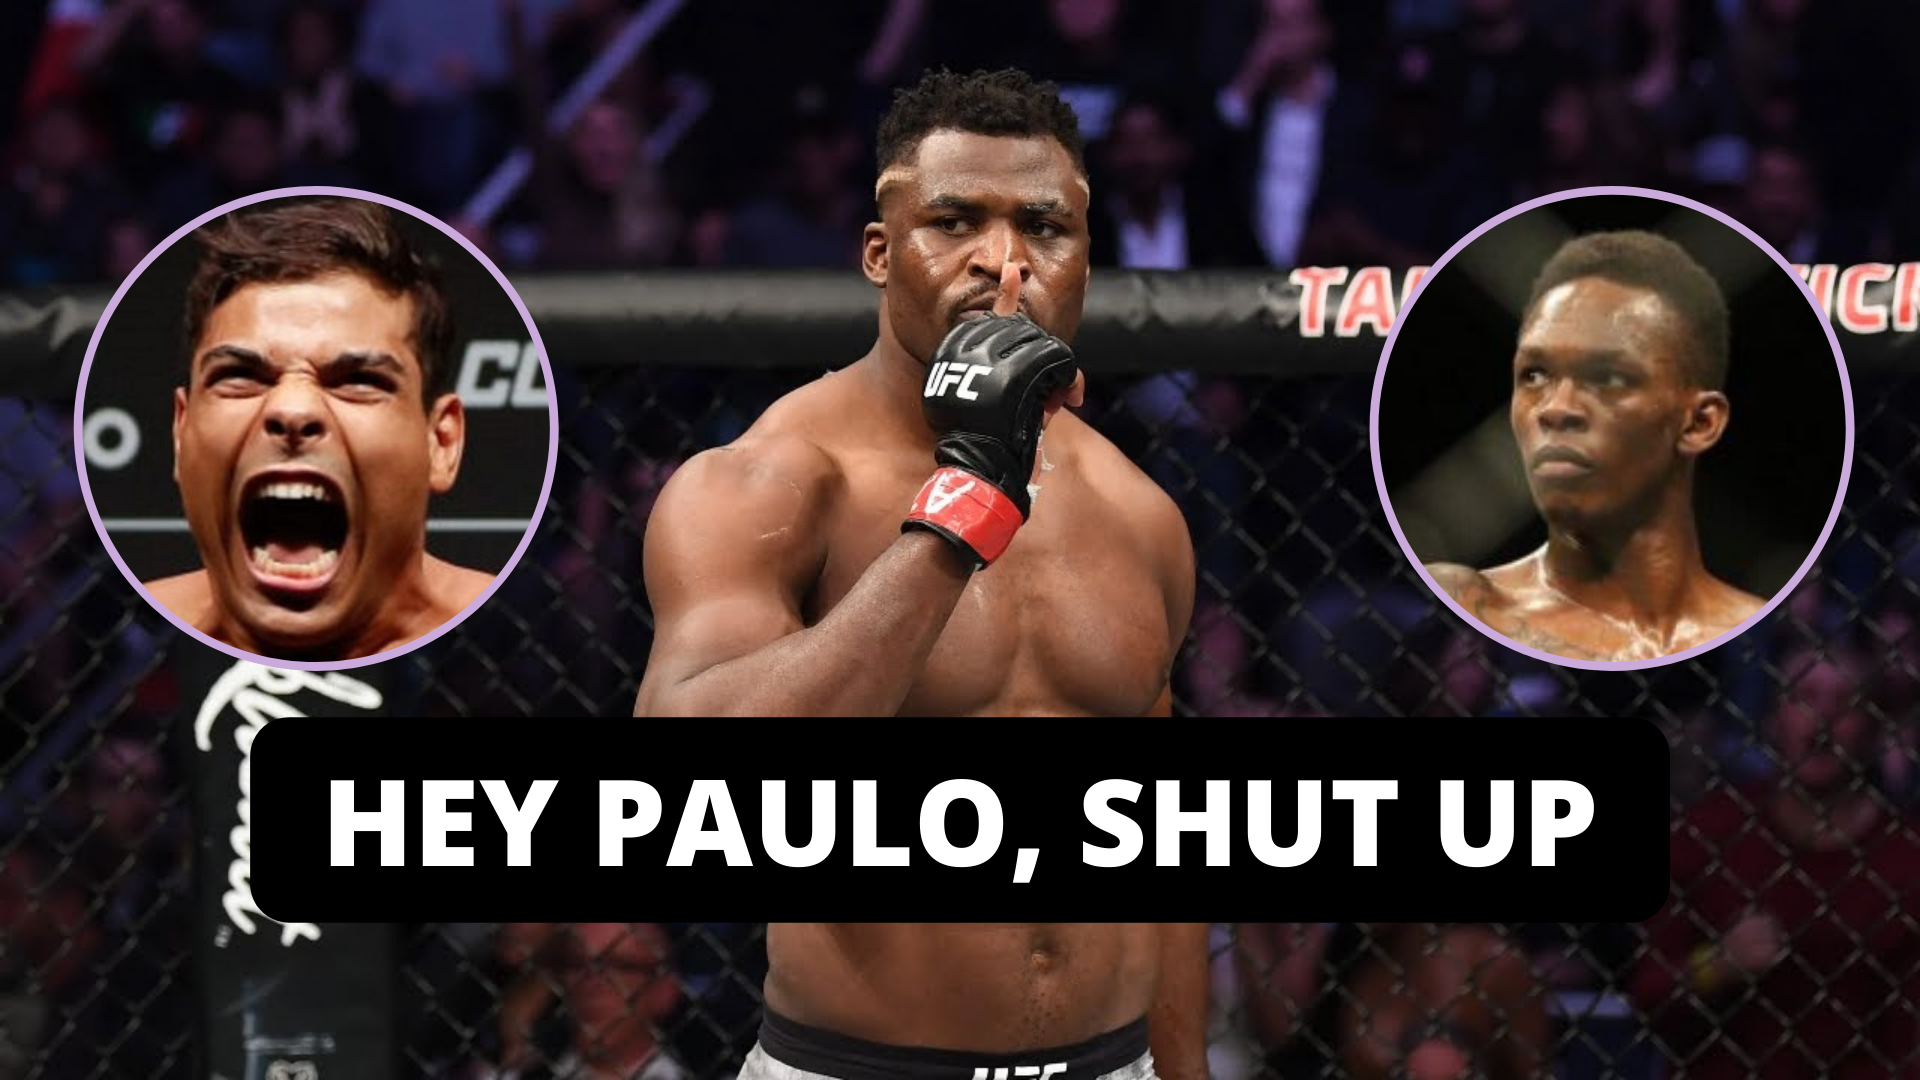 Israel Adesanya reveals how Francis Ngannou shut Paulo Costa up at UFC 248 - Israel Adesanya